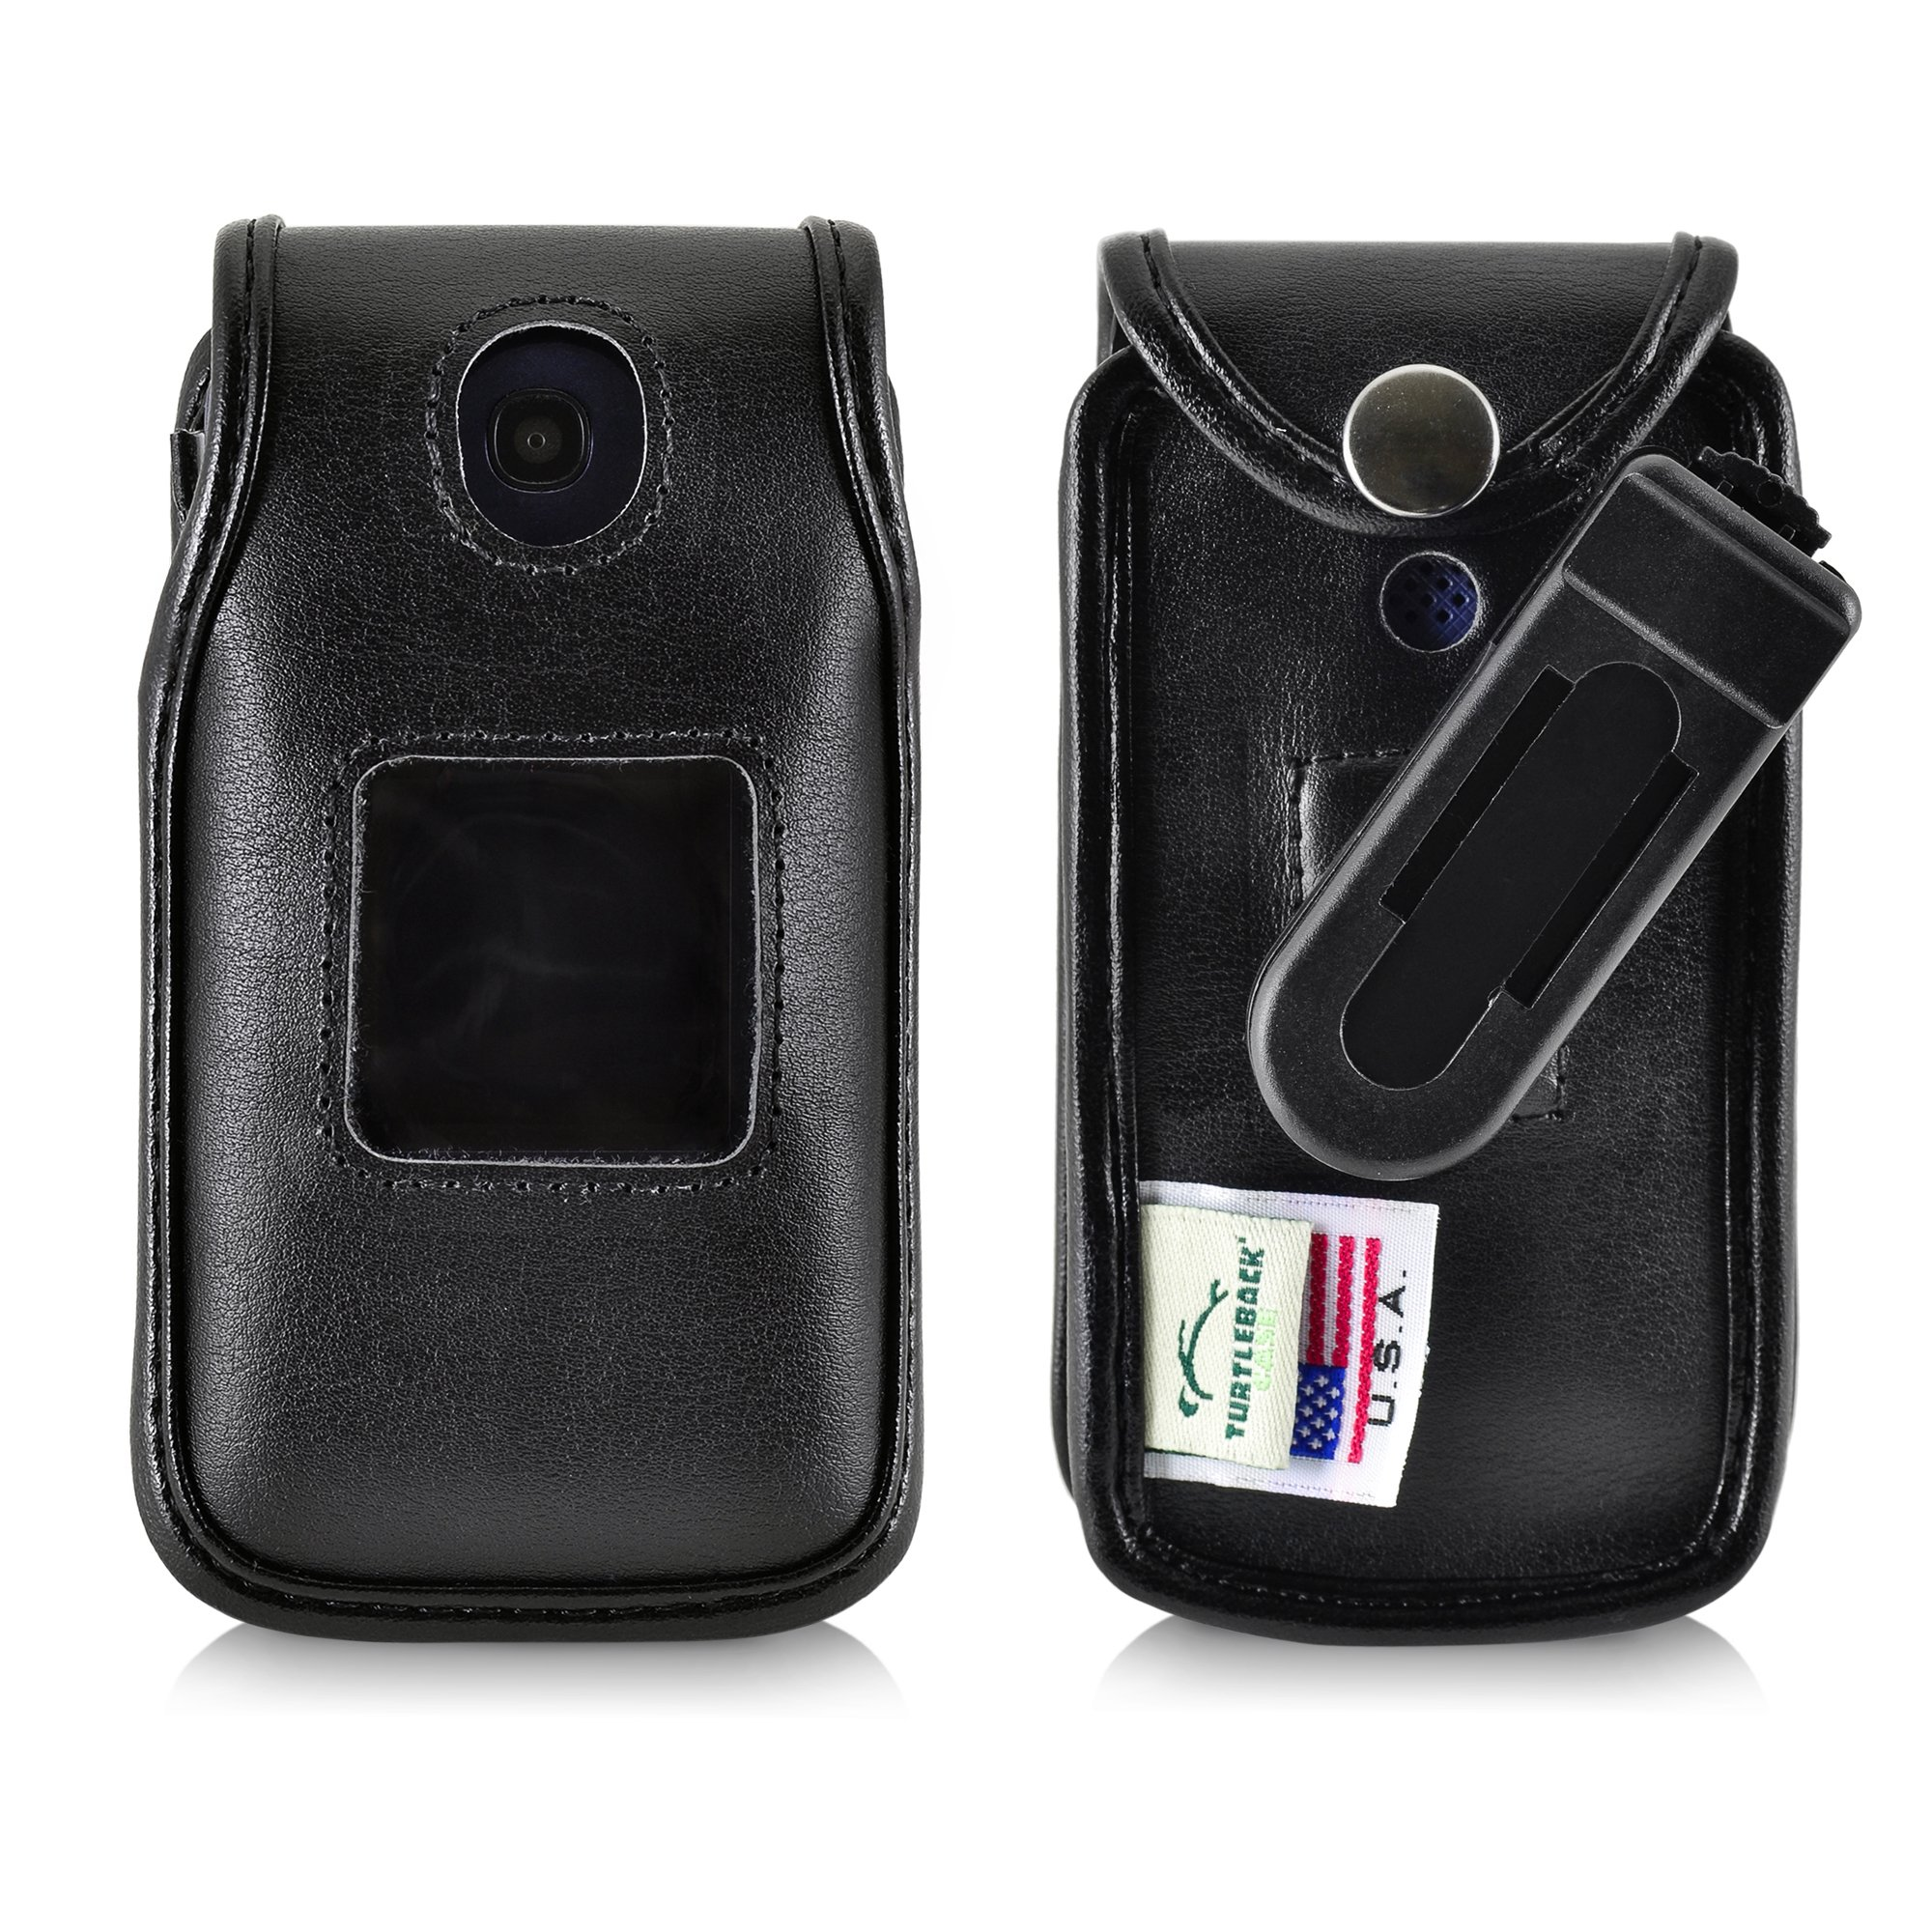 Turtleback Fitted Case for Consumer Cellular Alcatel GO FLIP Phone Black Leather Also for ATT Cingular FLIP2 and T-Mobile 4044W, MYFLIP (A405DL) Ratcheting Removable Belt Clip by TurtleBack